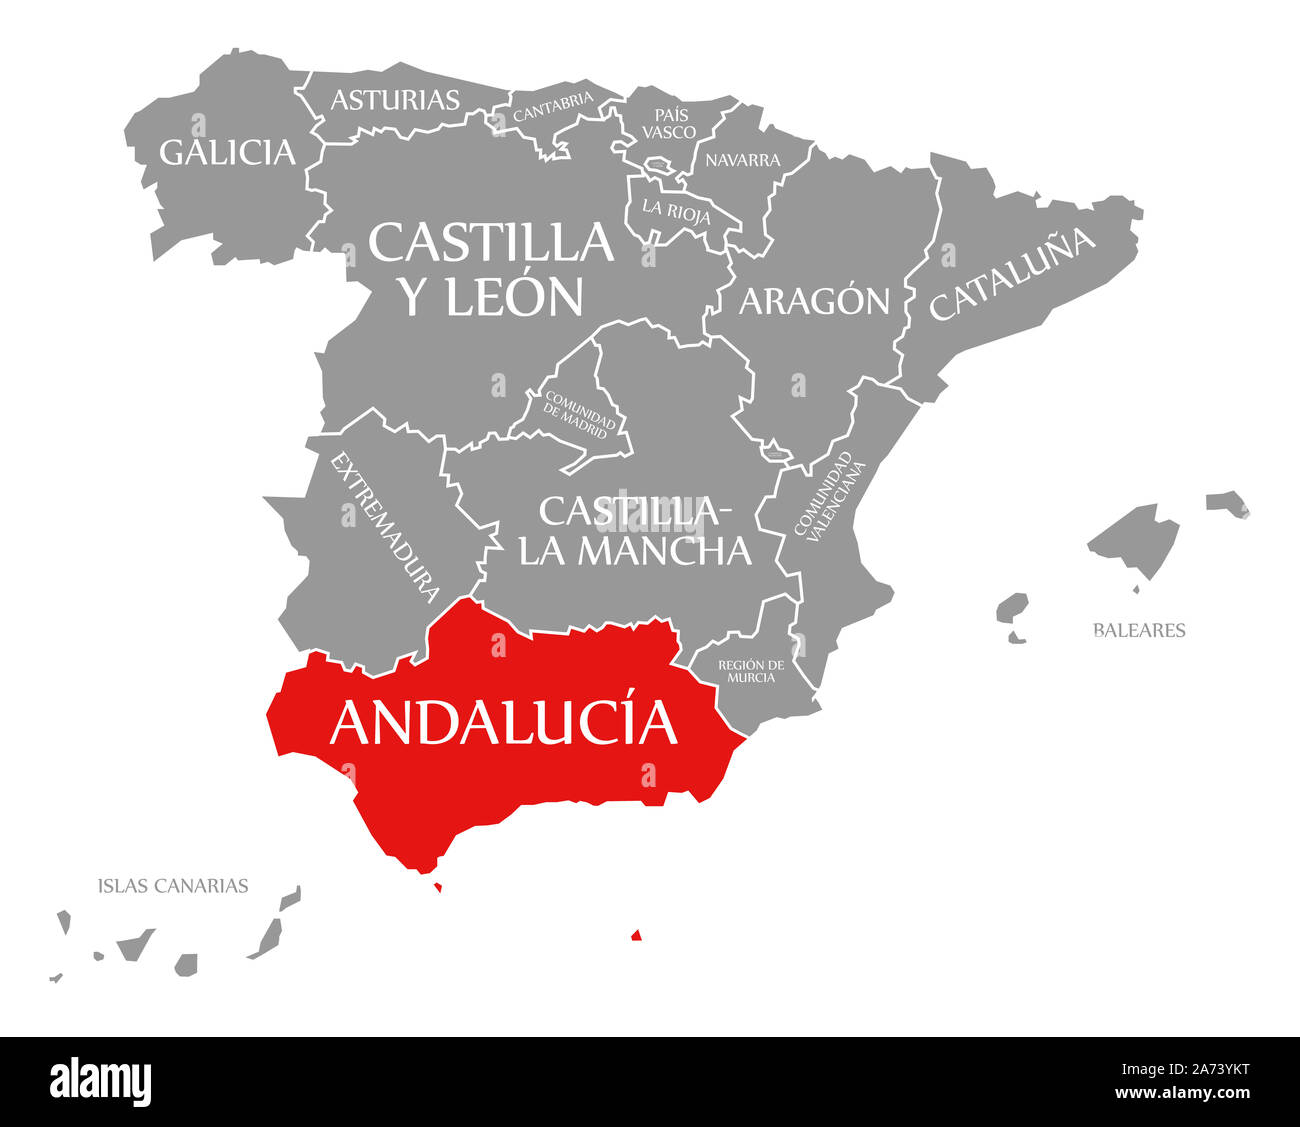 Map Of Spain Andalucia.Andalucia Red Highlighted In Map Of Spain Stock Photo 331387164